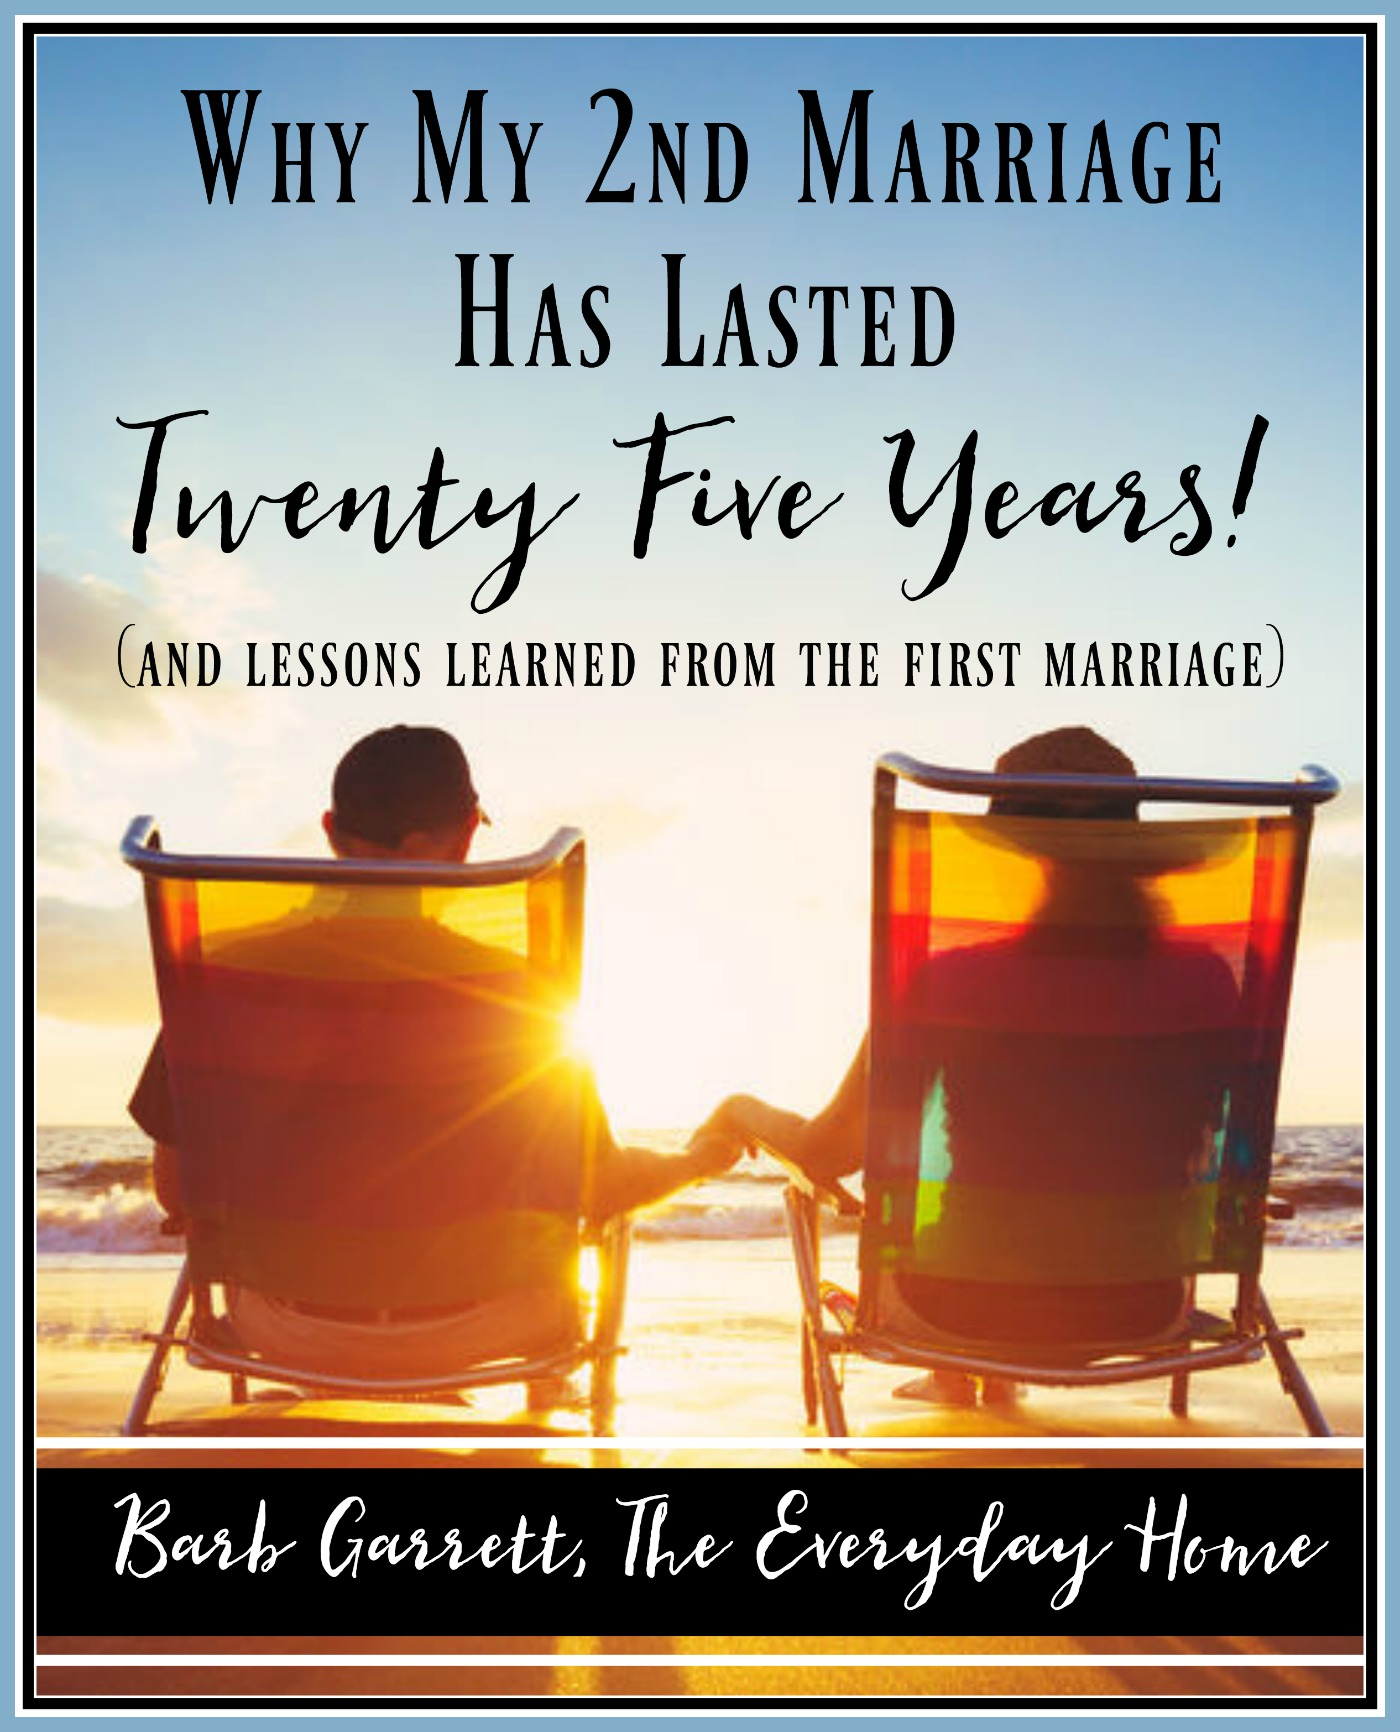 Why My 2nd Marriage Has Lasted 25 Years - The Everyday Home